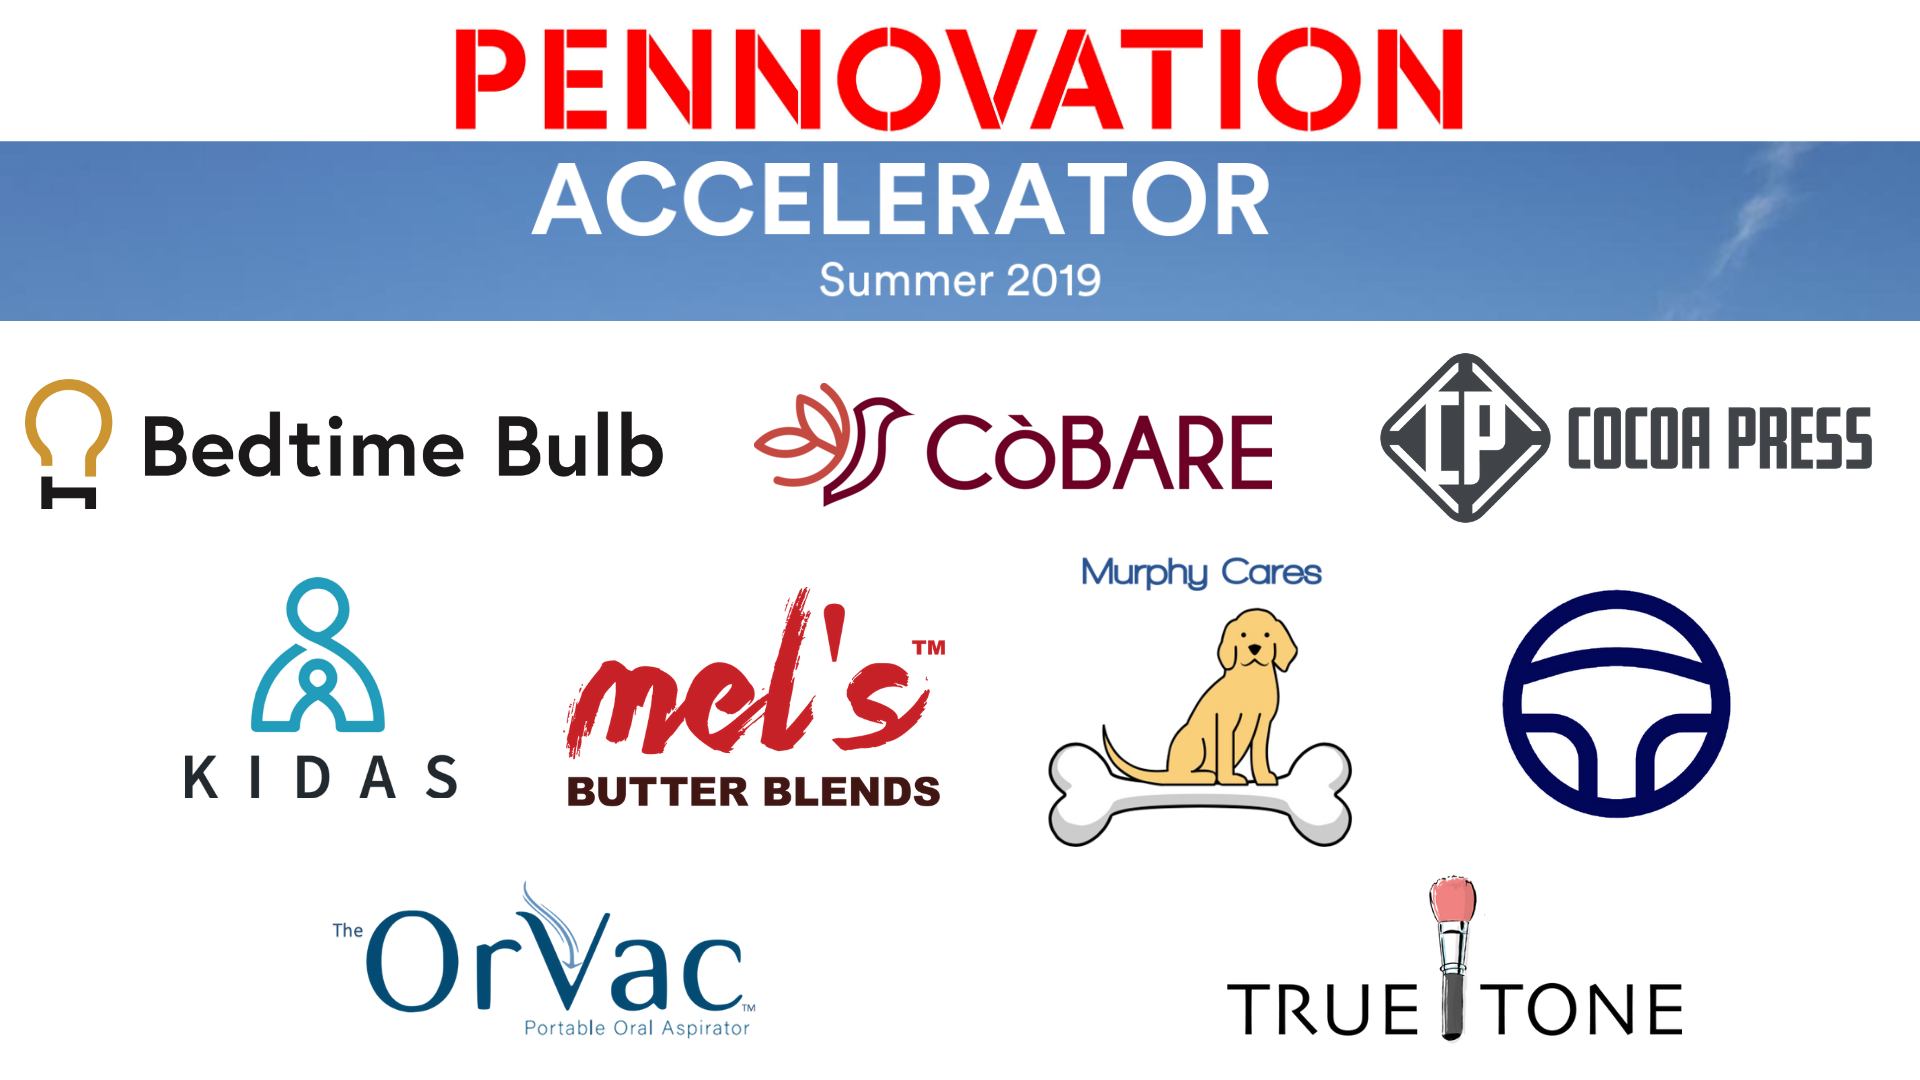 Introducing the 2019 Pennovation Accelerator Cohort